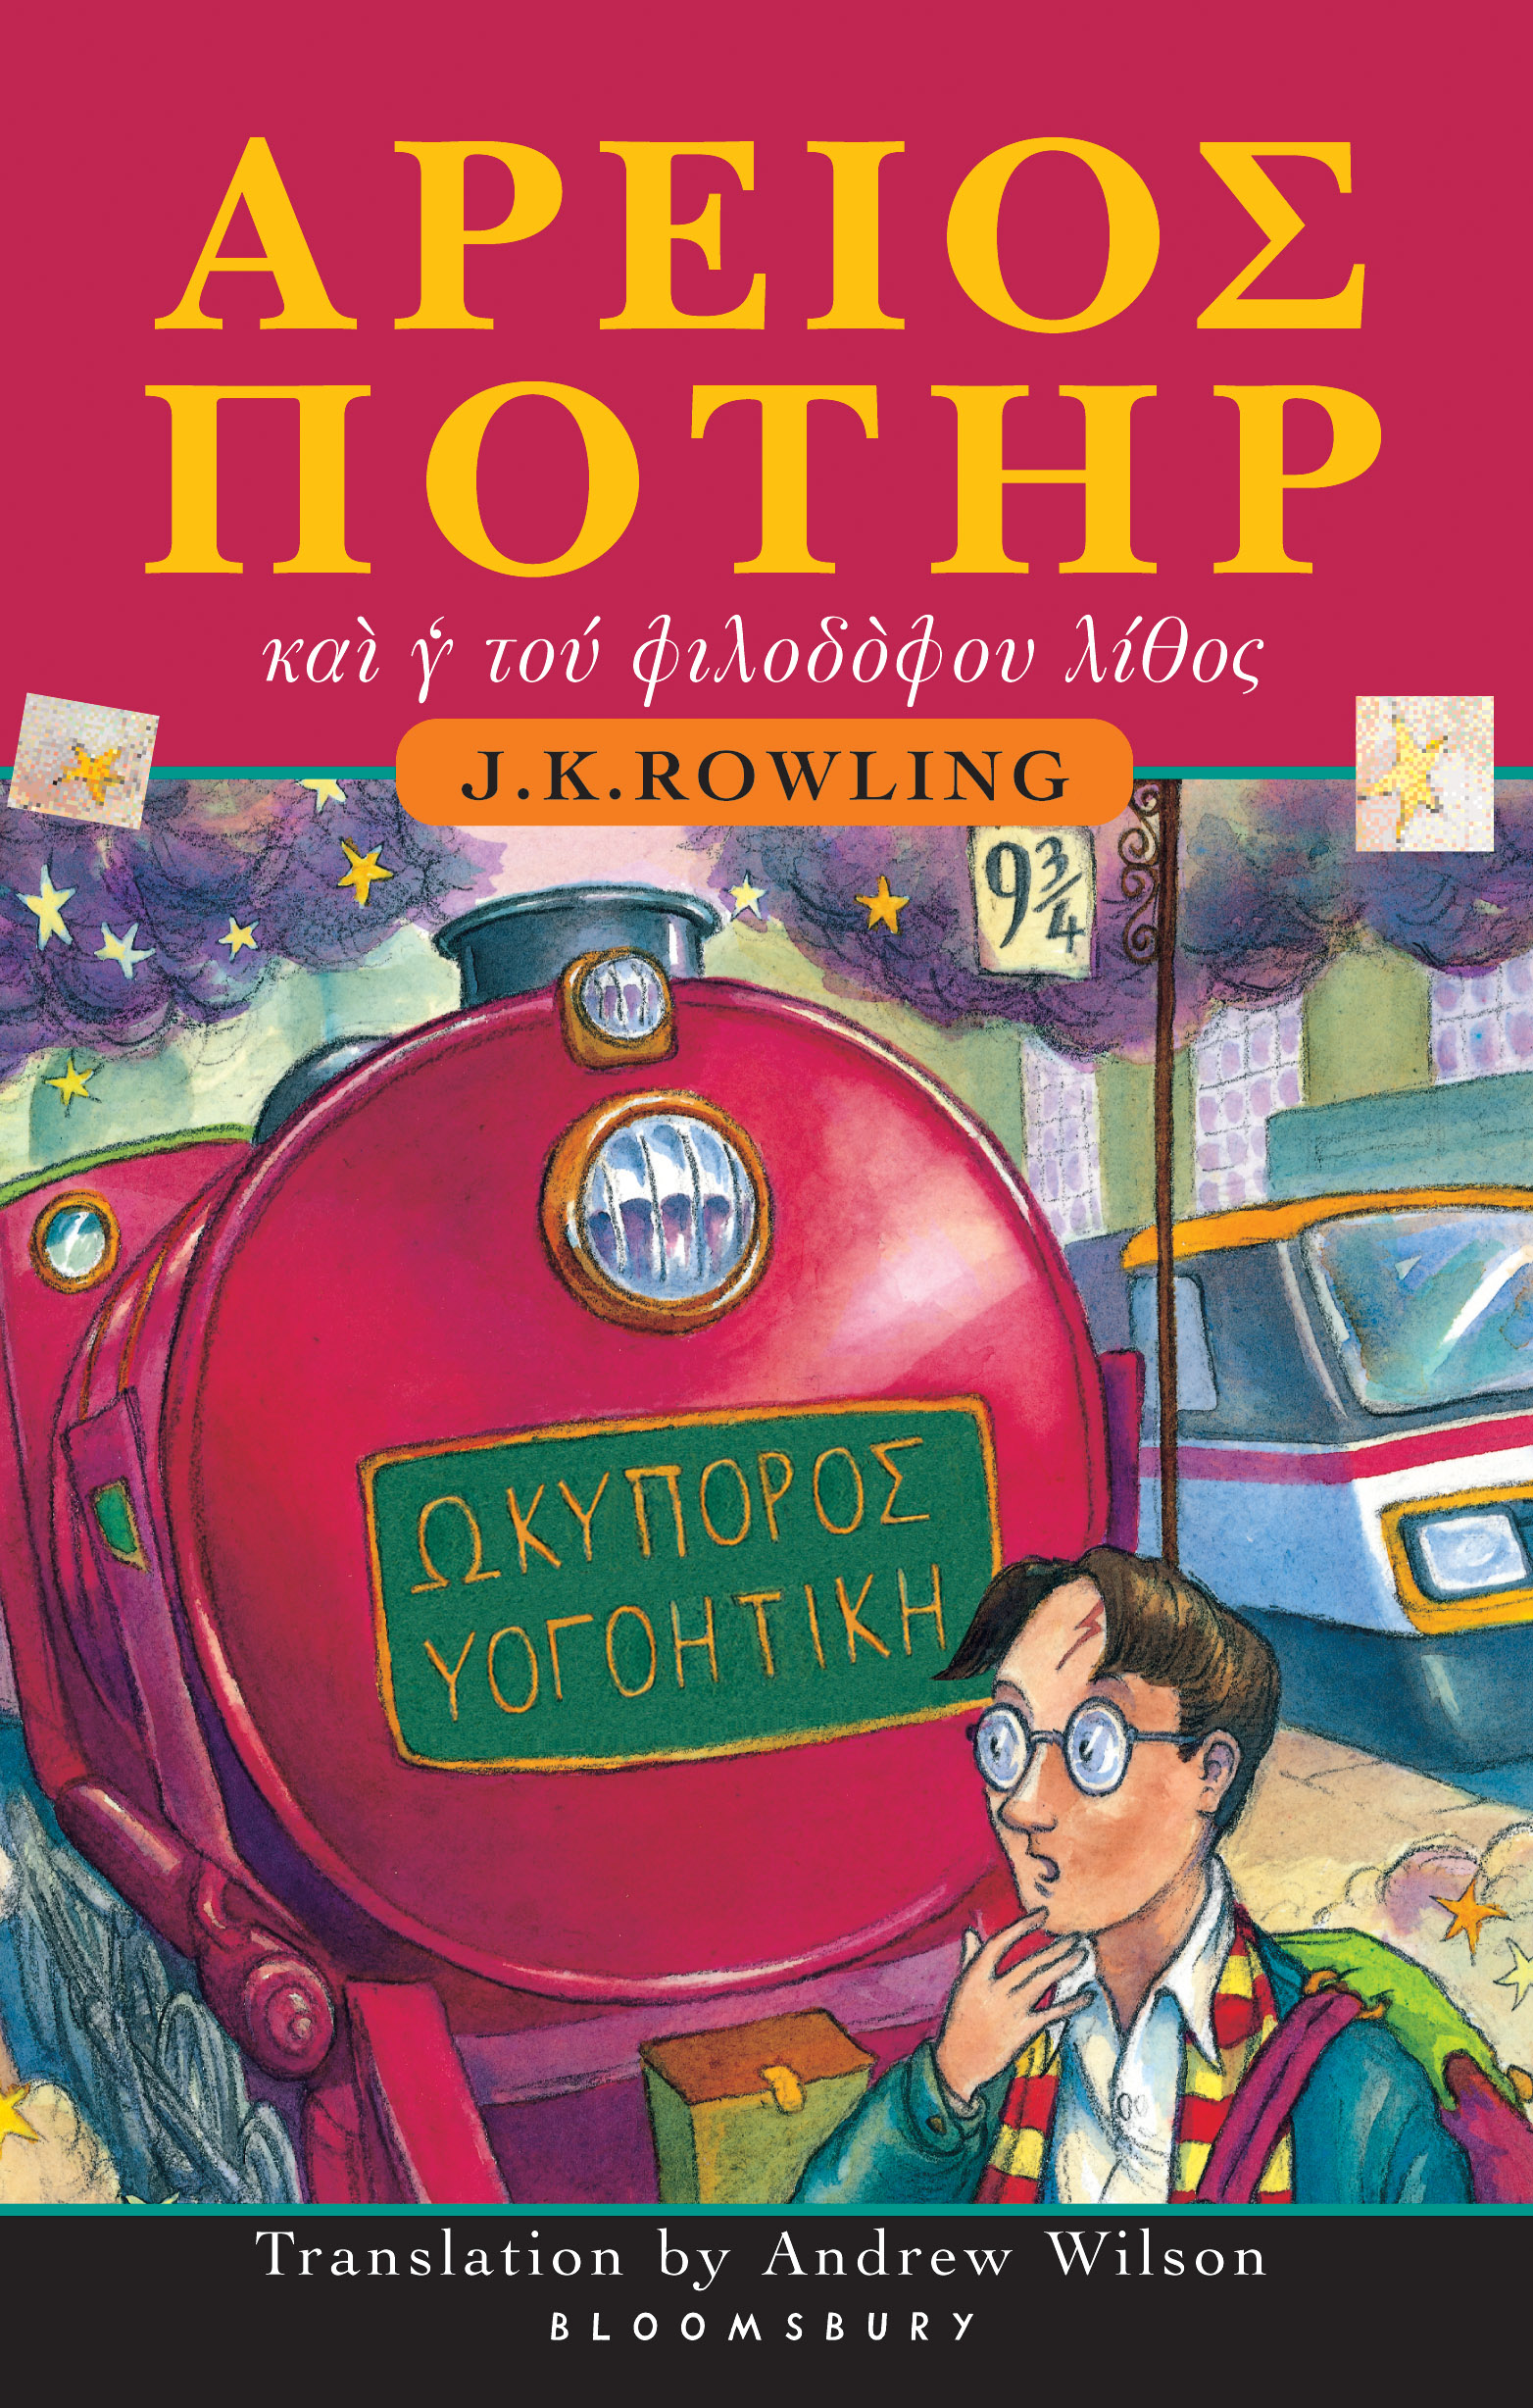 Cover Art for Harry Potter Philiosopher Stone (Ancient Greek Edition), ISBN: 9780747568971